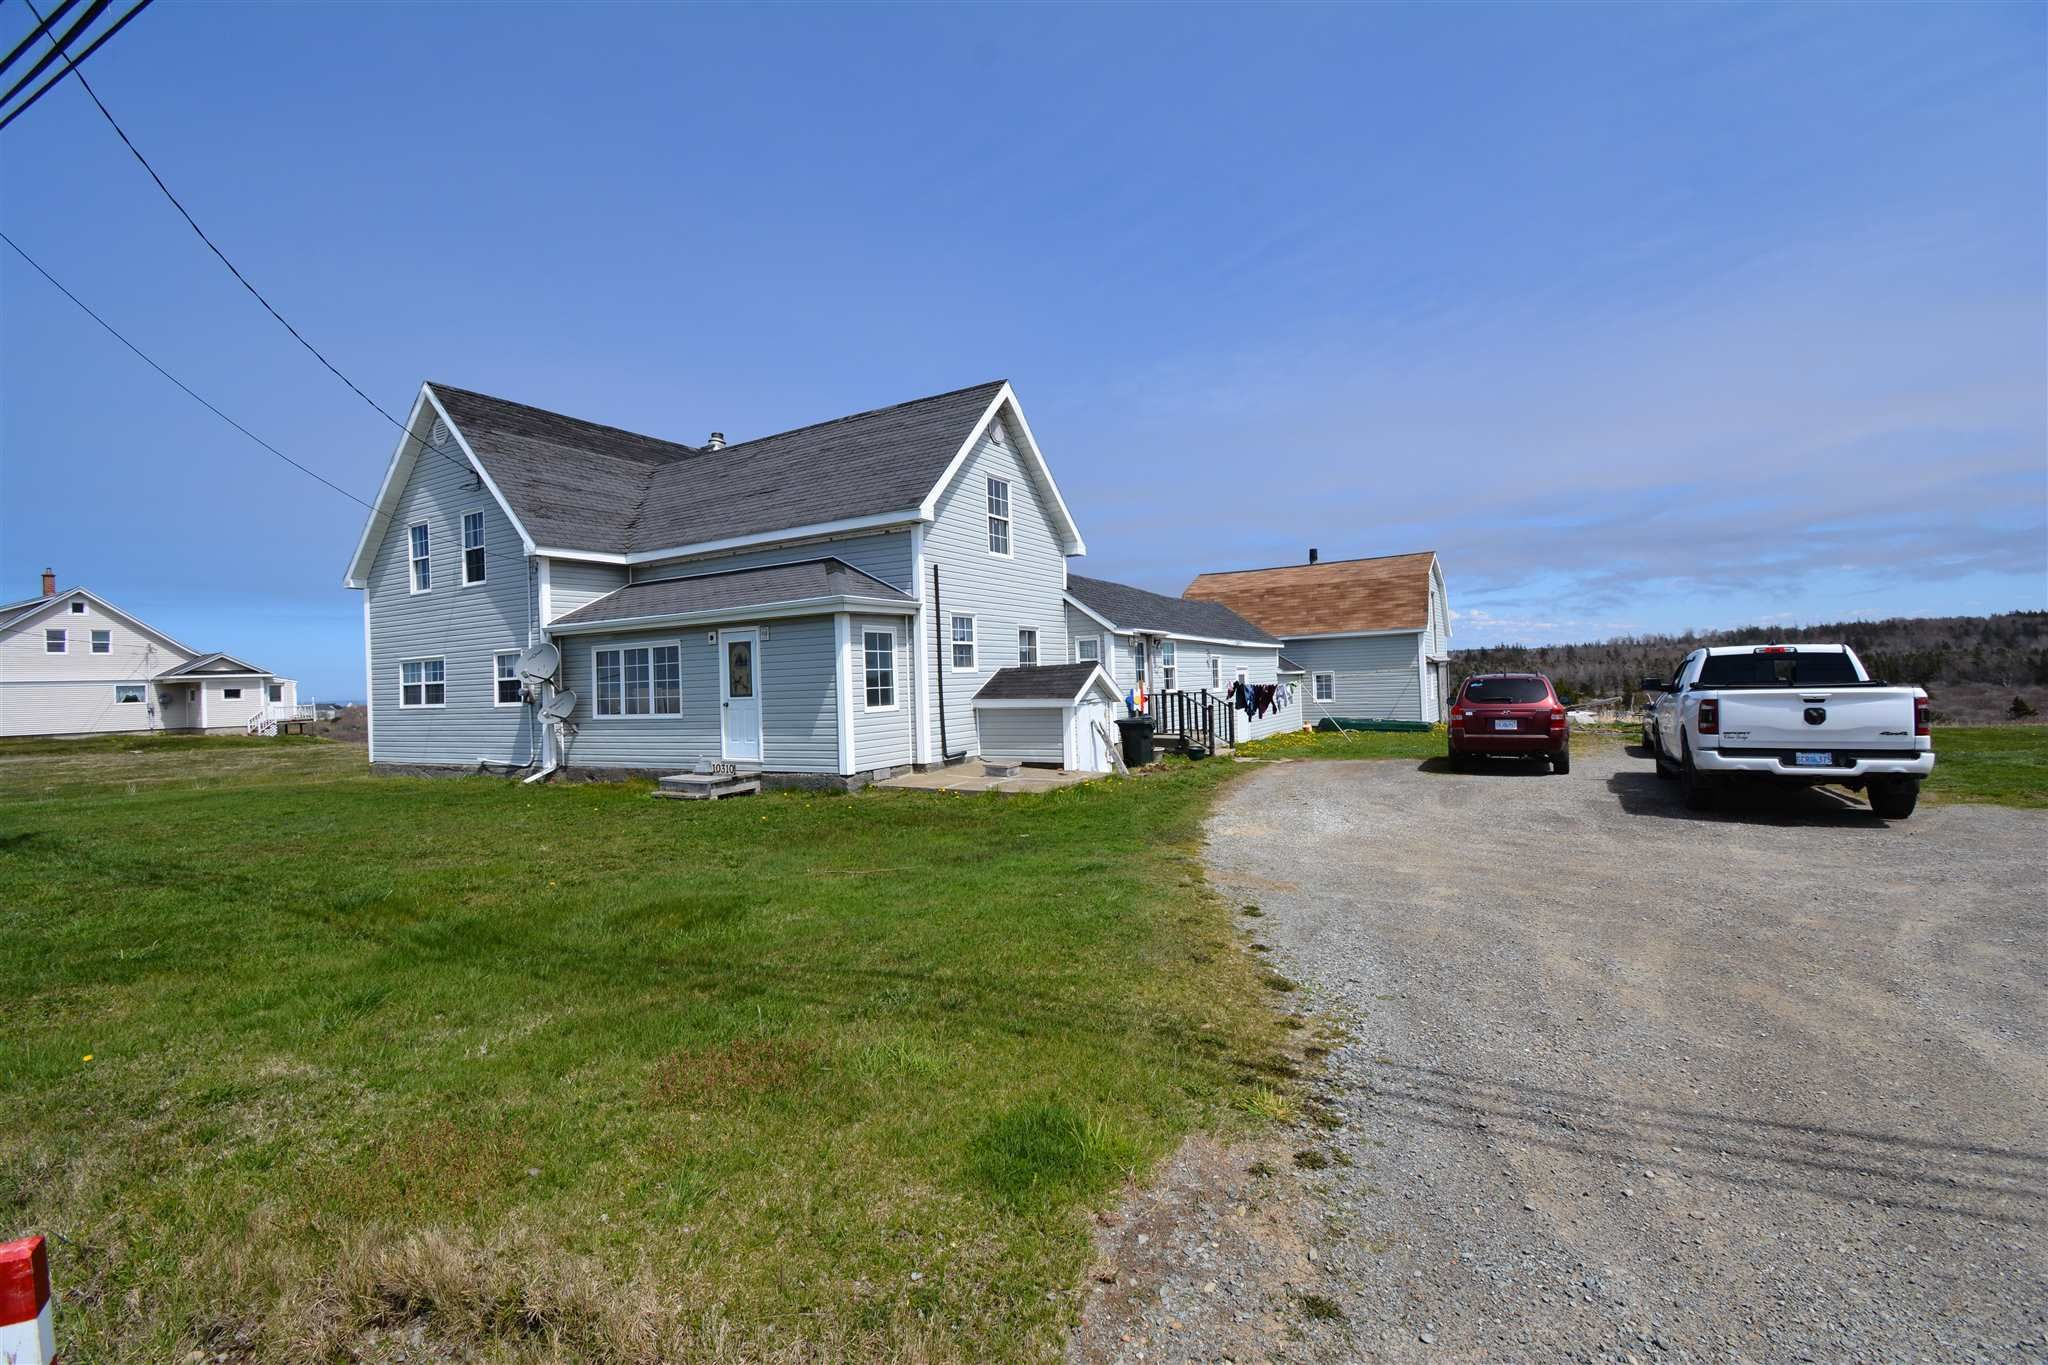 Main Photo: 10310 HIGHWAY 1 in Saulnierville: 401-Digby County Residential for sale (Annapolis Valley)  : MLS®# 202110358